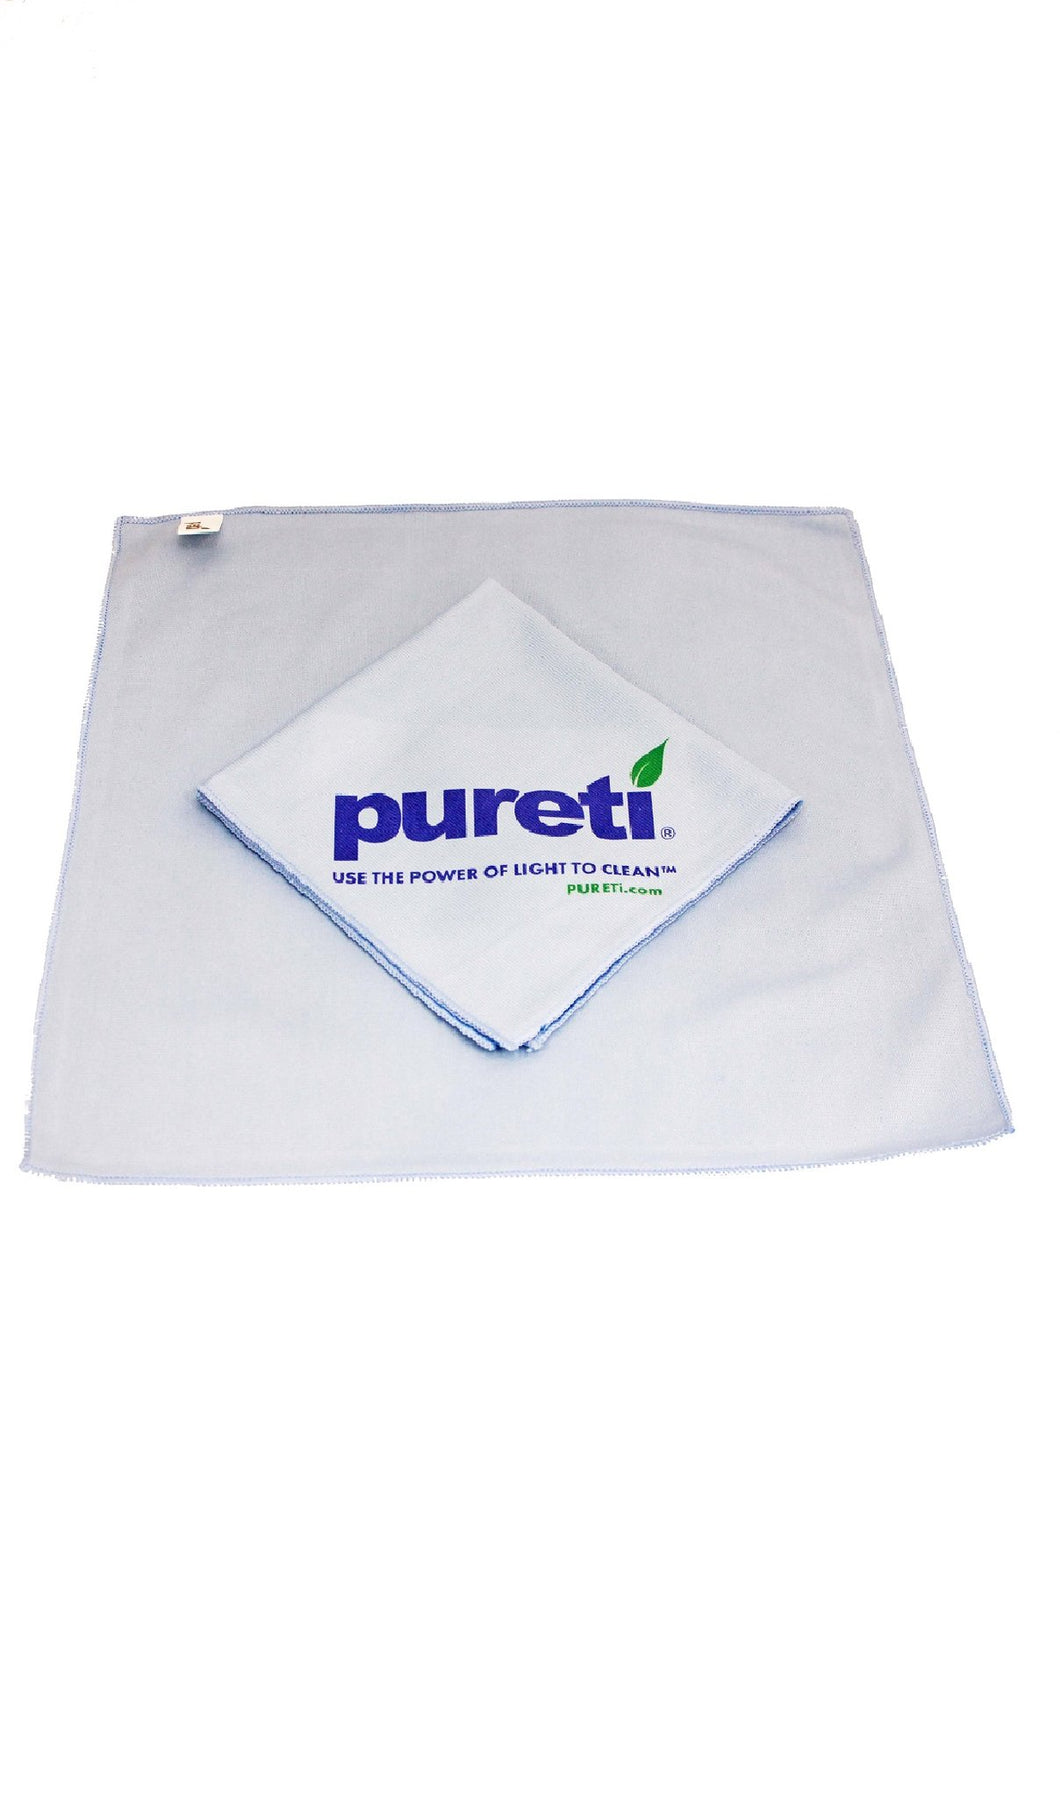 pureti Glass Specific Microfiber Cloths